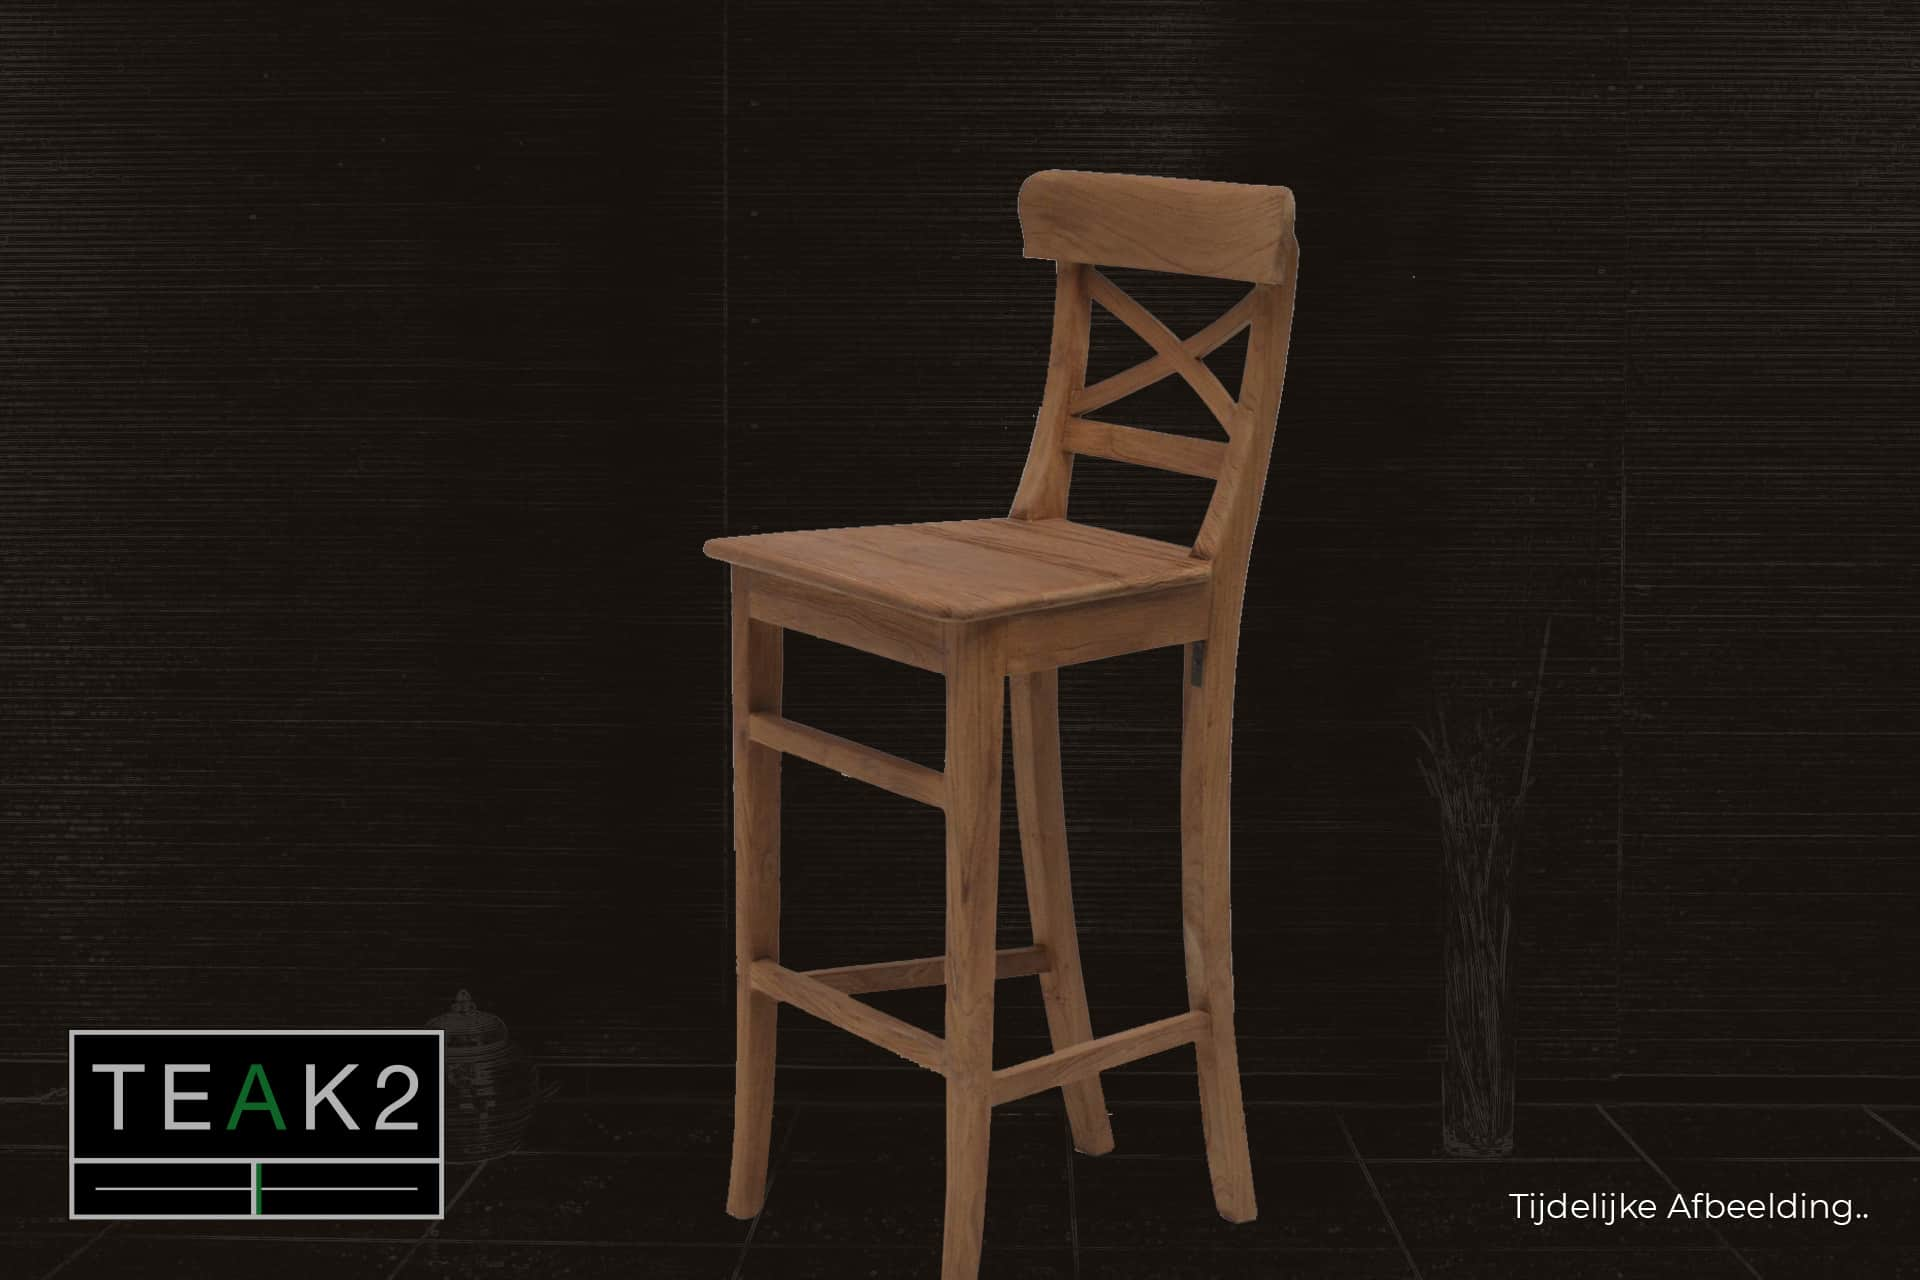 Bar stool Teak Kursi Palang Old | teak bar stool in brushed old teak with cross in the back. Solid stool in solid wood, also catering - TEAK2.